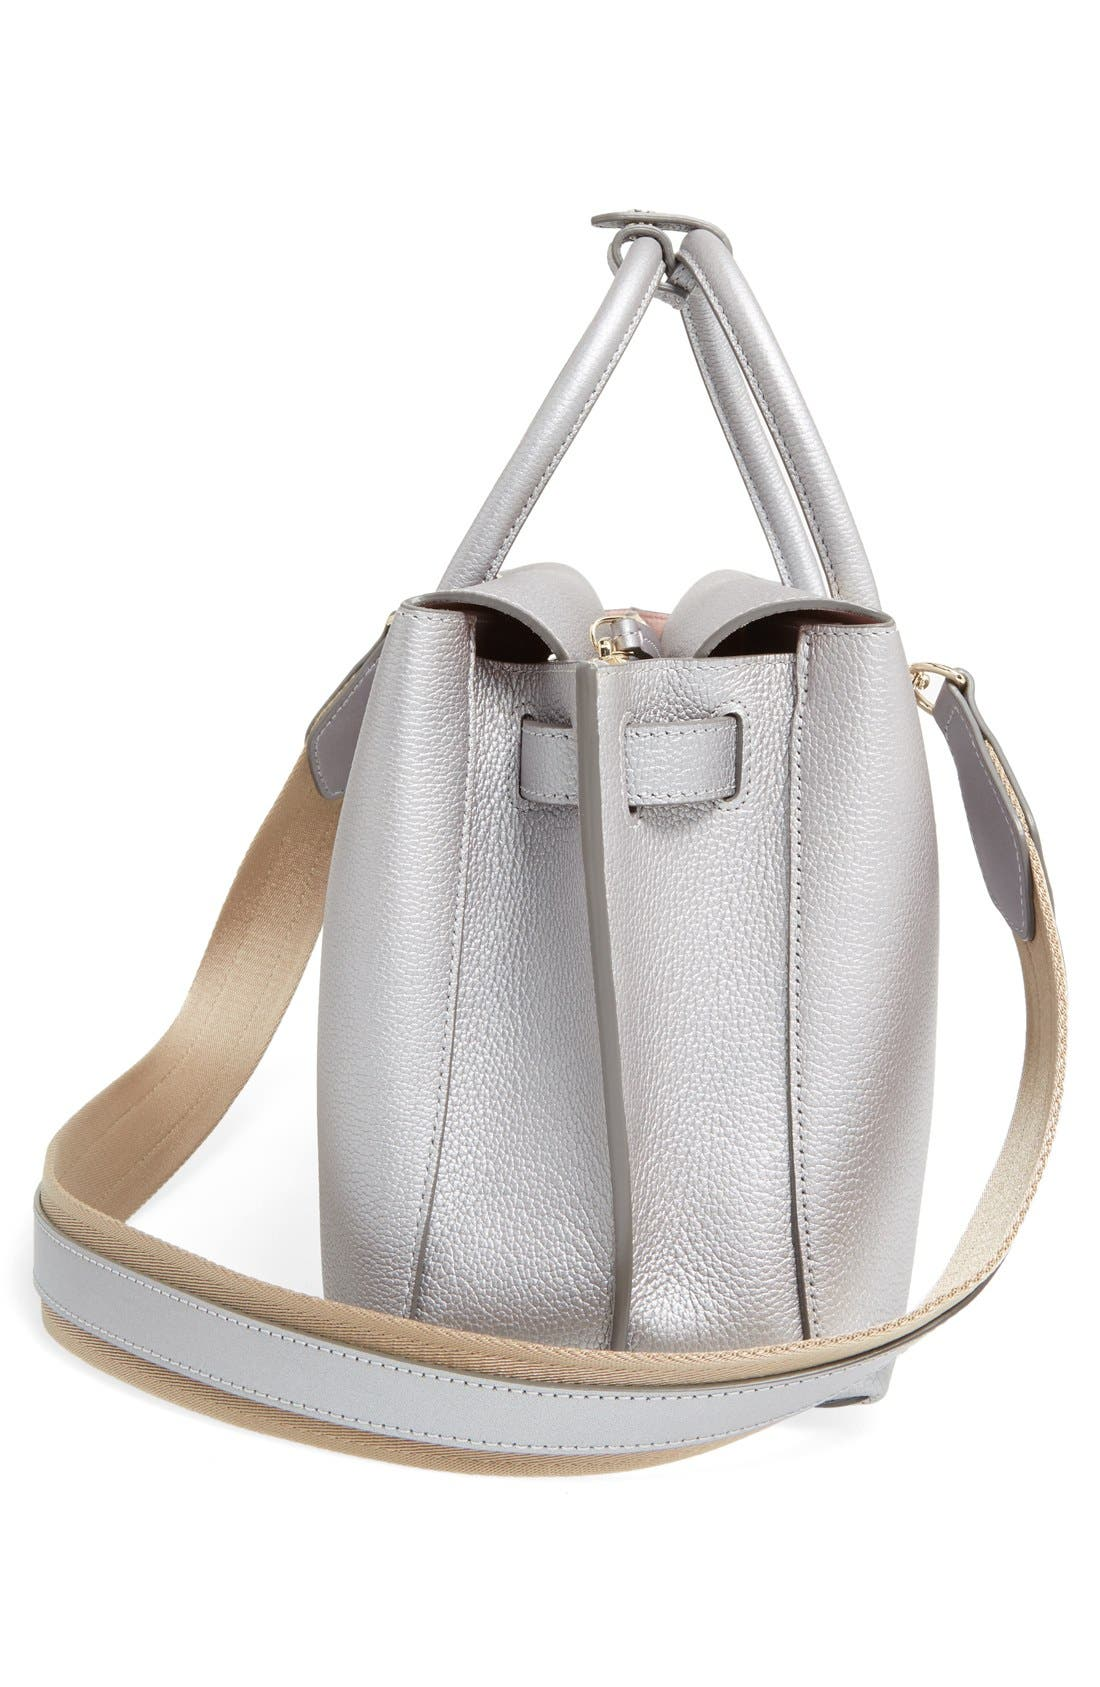 Medium Milla Leather Tote,                             Alternate thumbnail 9, color,                             045